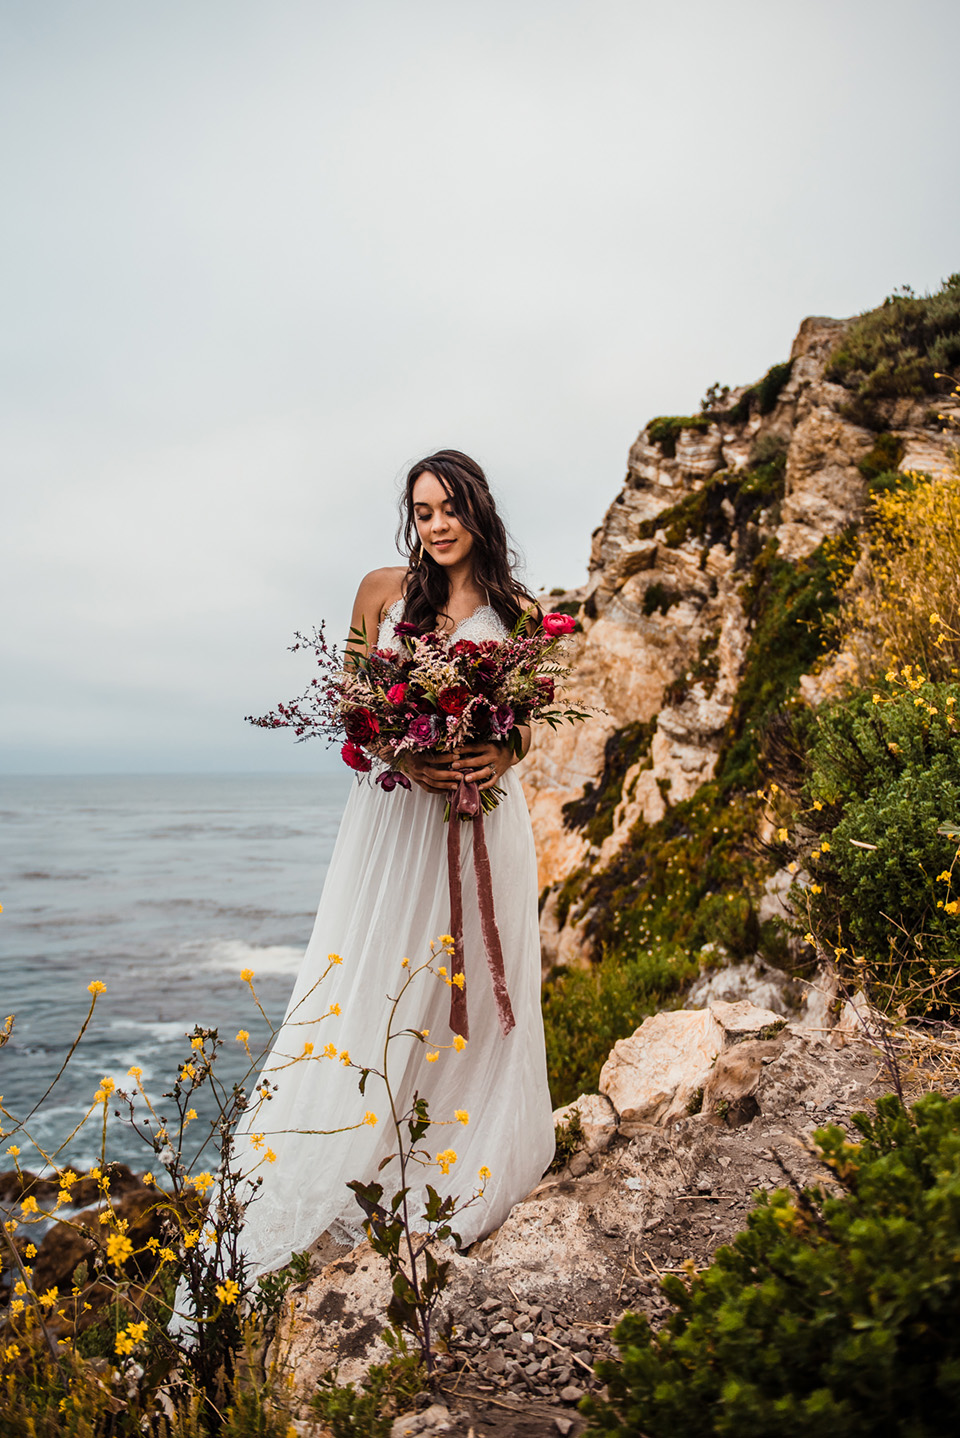 avila-beach-elopement-shoot-bride-in-a-soft-flowing-gown-with-a-strapless-neckline-and-a-big-bouquet-of-flowers